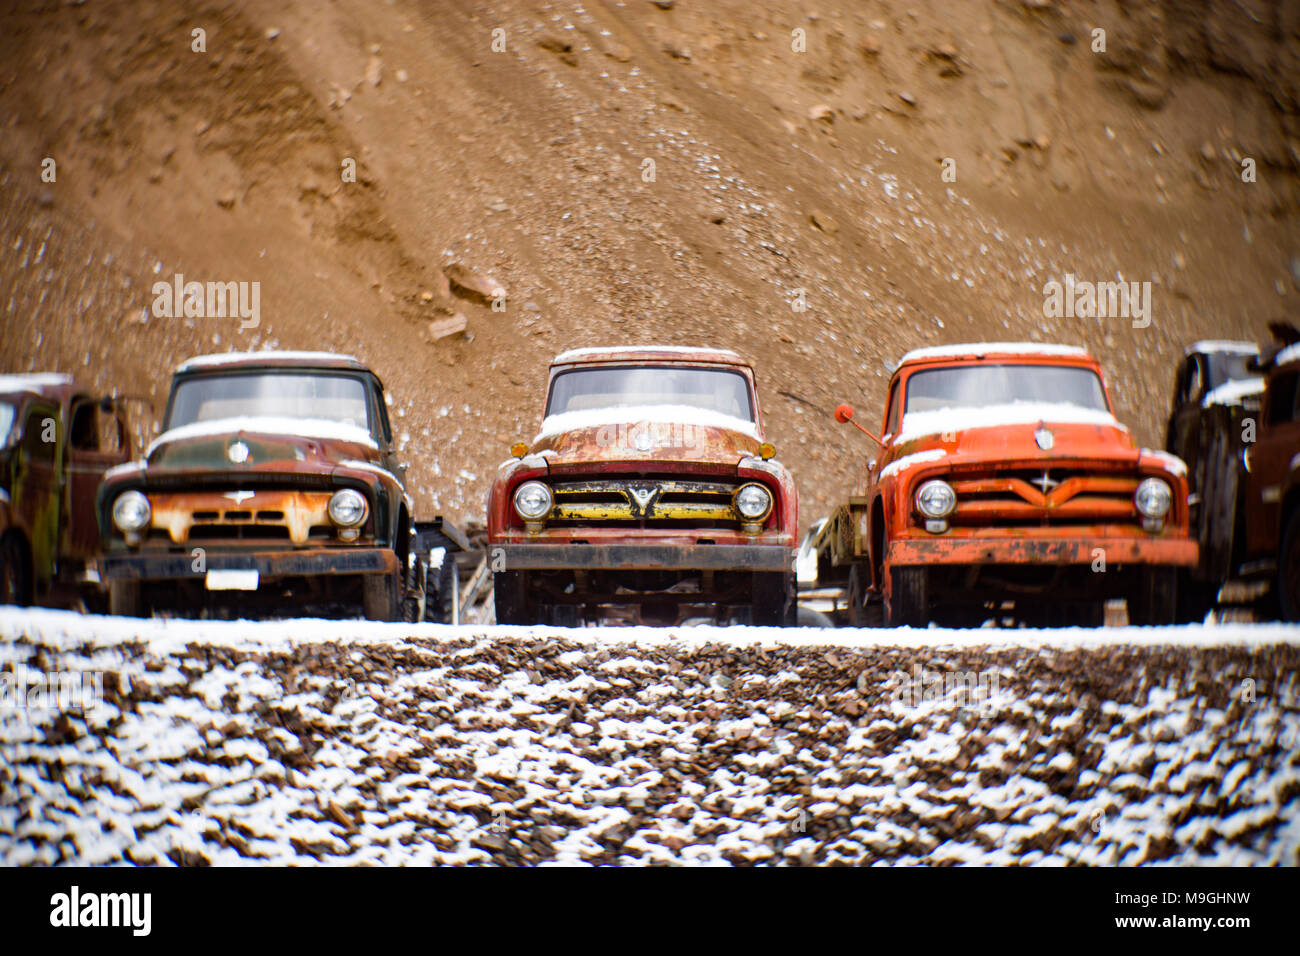 1950s Ford Truck Stock Photos Images Alamy 1954 F100 Pick Up A Row Of Old 1953 And 1955 Pickup Trucks In An